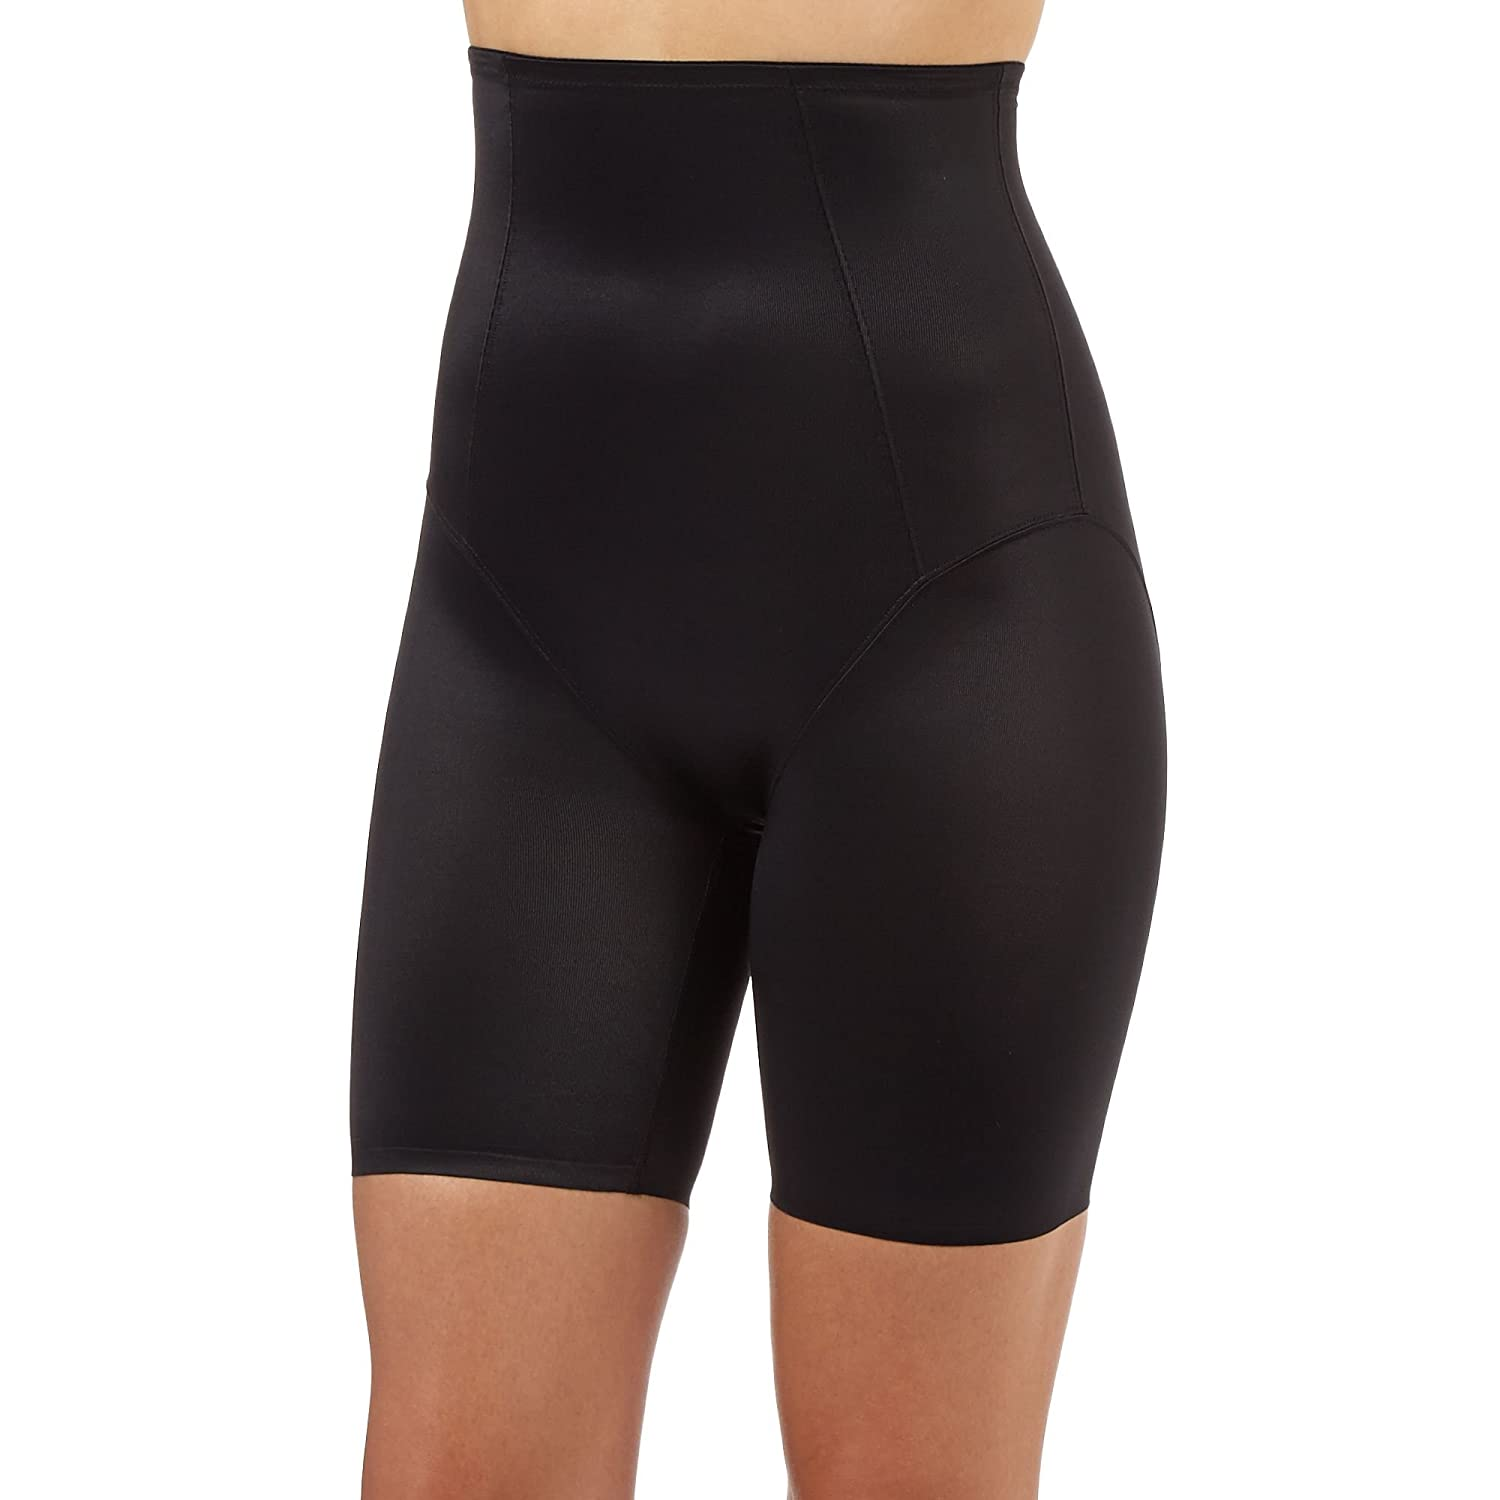 Debenhams The Collection Womens Black Firm Control High Waisted Thigh Slimmers